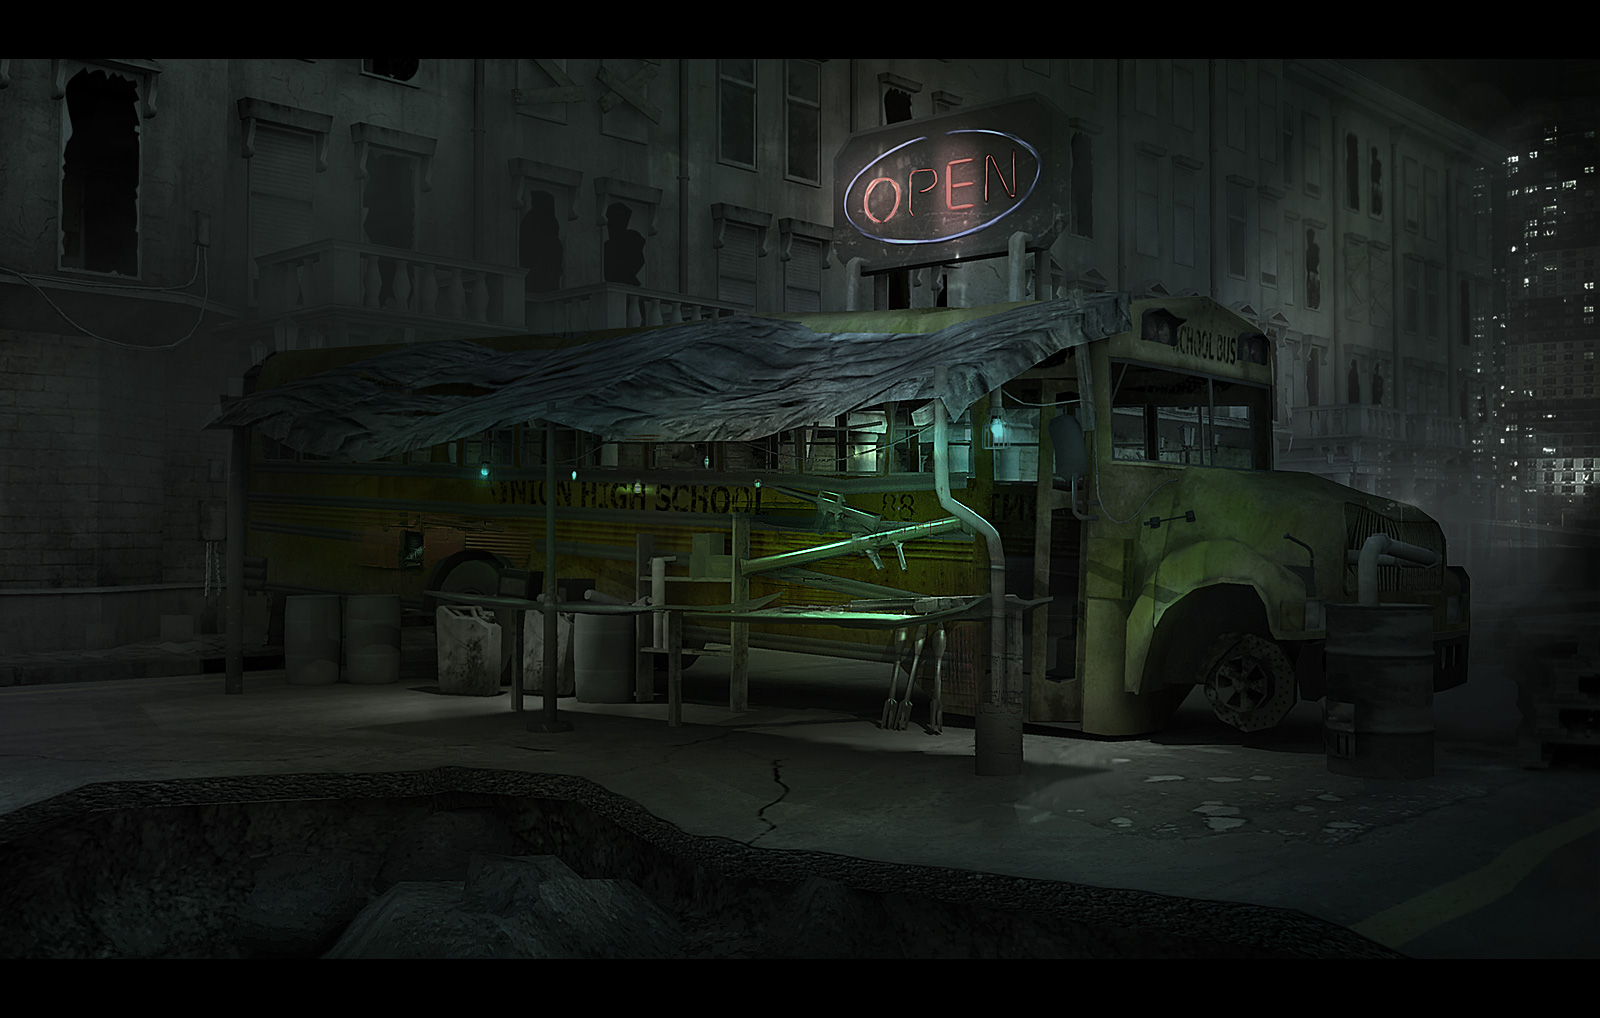 Apocalyptic Shop by Jiwer